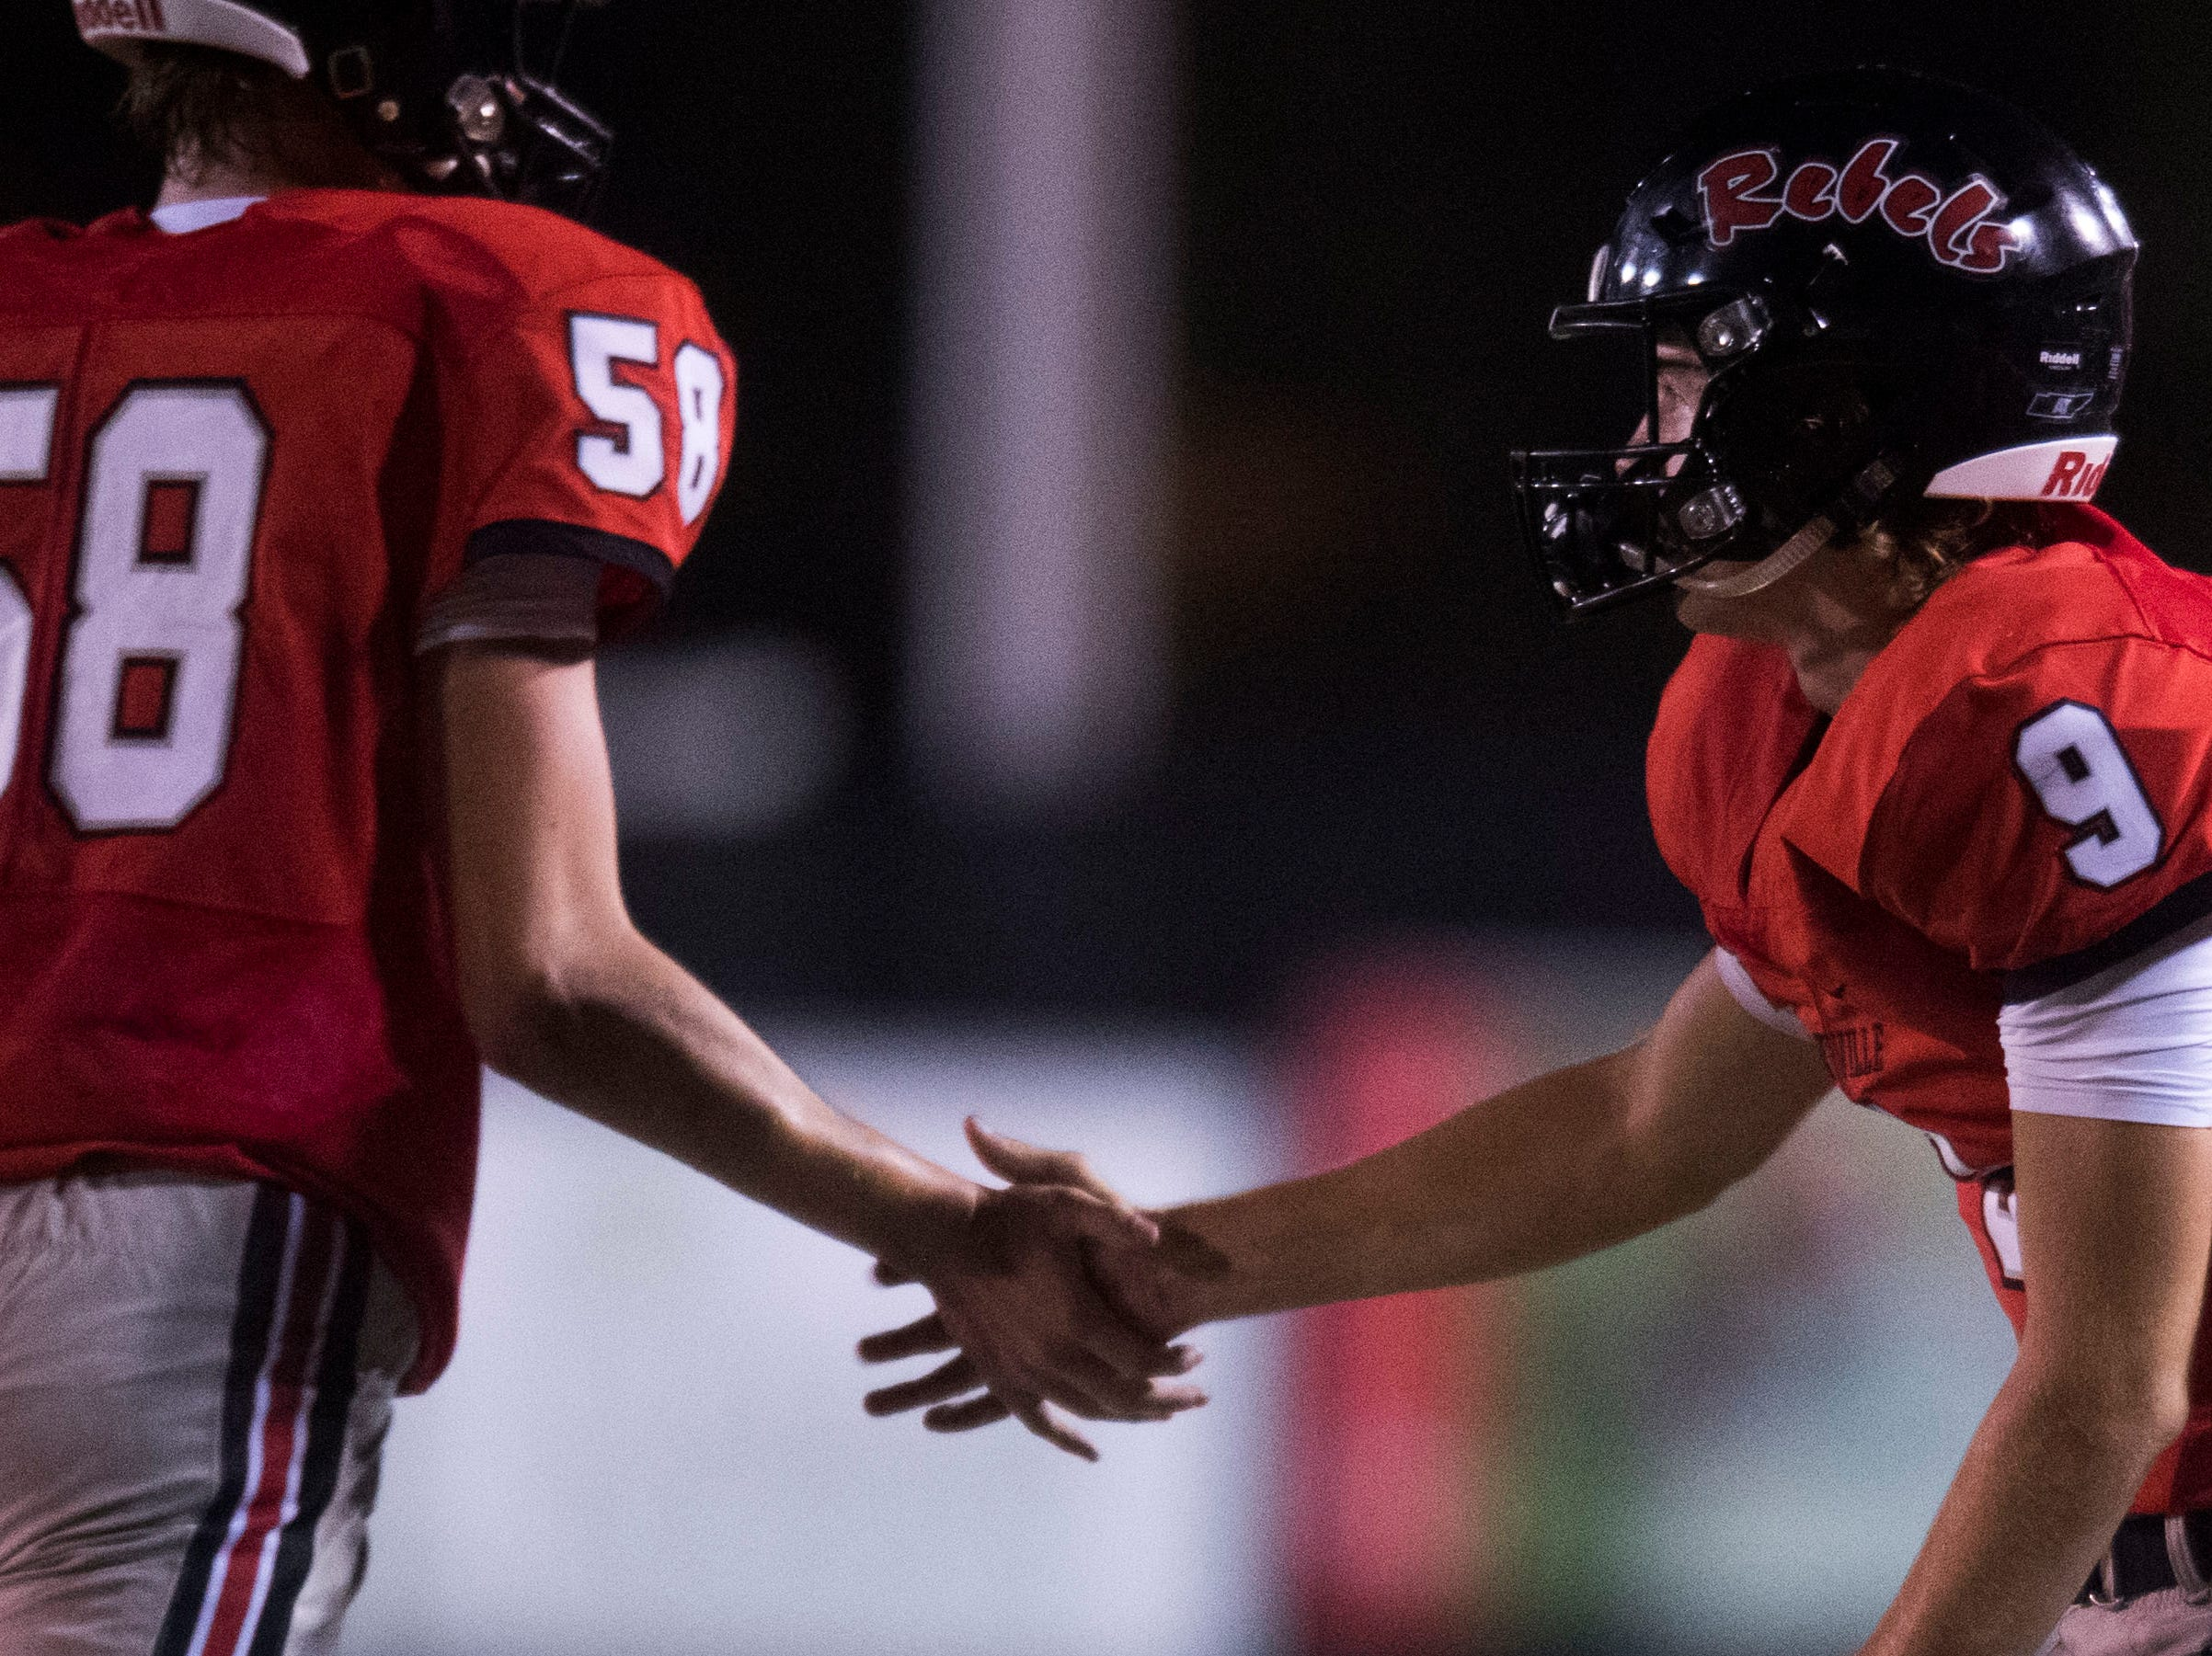 Maryville's Cade Chambers (9) high fives Maryville's Mason Hobby (58) during a game between Cleveland and Maryville at Maryville Thursday, Oct. 4, 2018. Maryville defeated Cleveland 42-7.